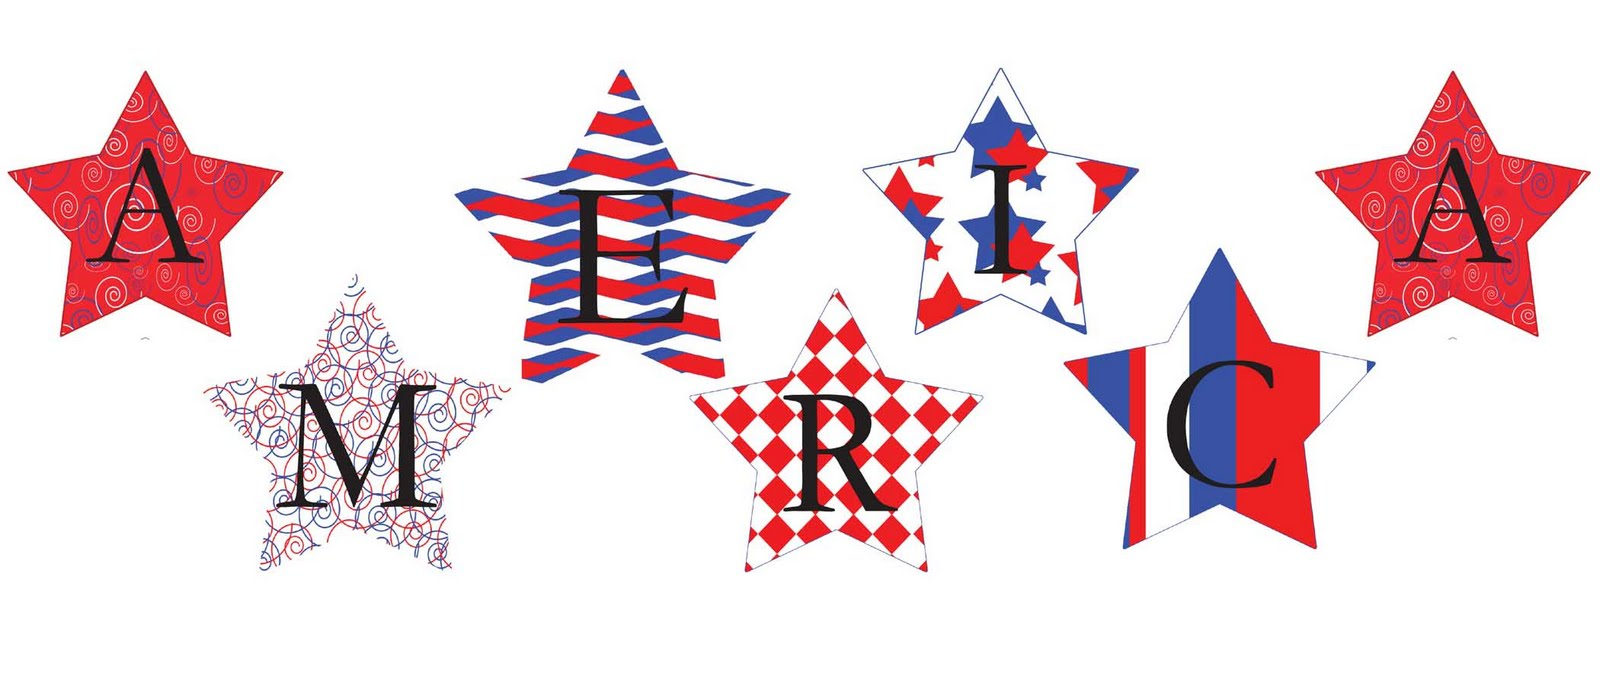 little piles everywhere fourth of july star banner and. Black Bedroom Furniture Sets. Home Design Ideas